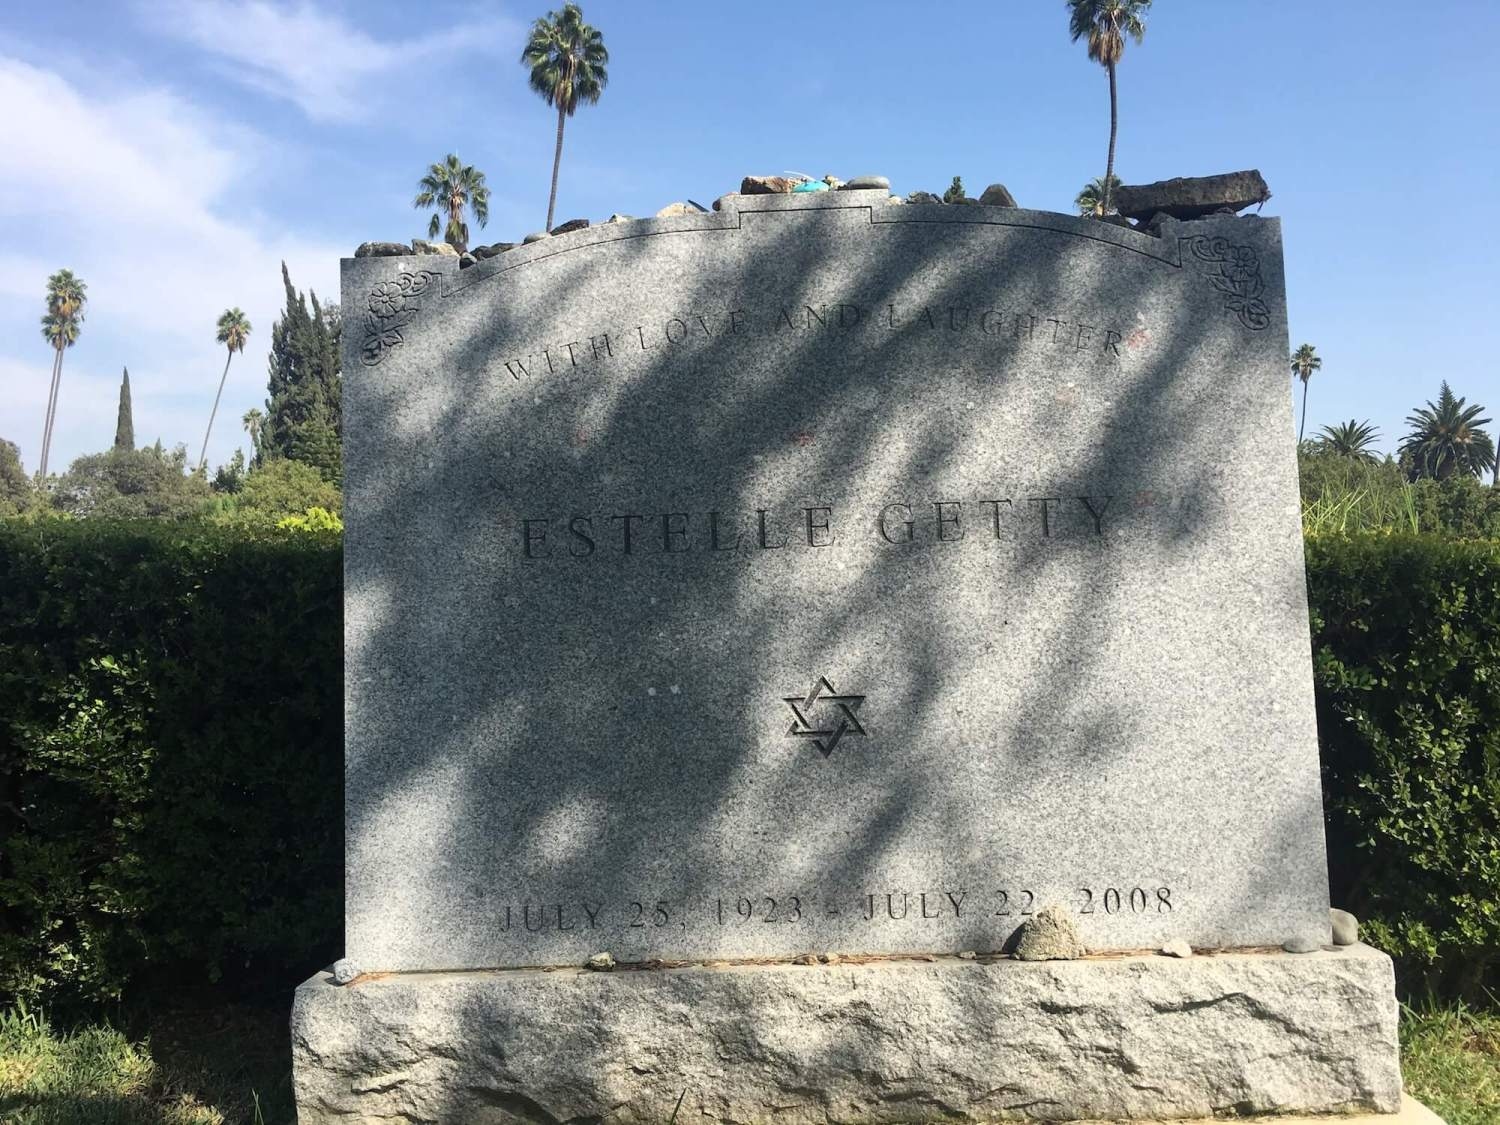 Estelle Getty grave, hollywood Forever Cemetery